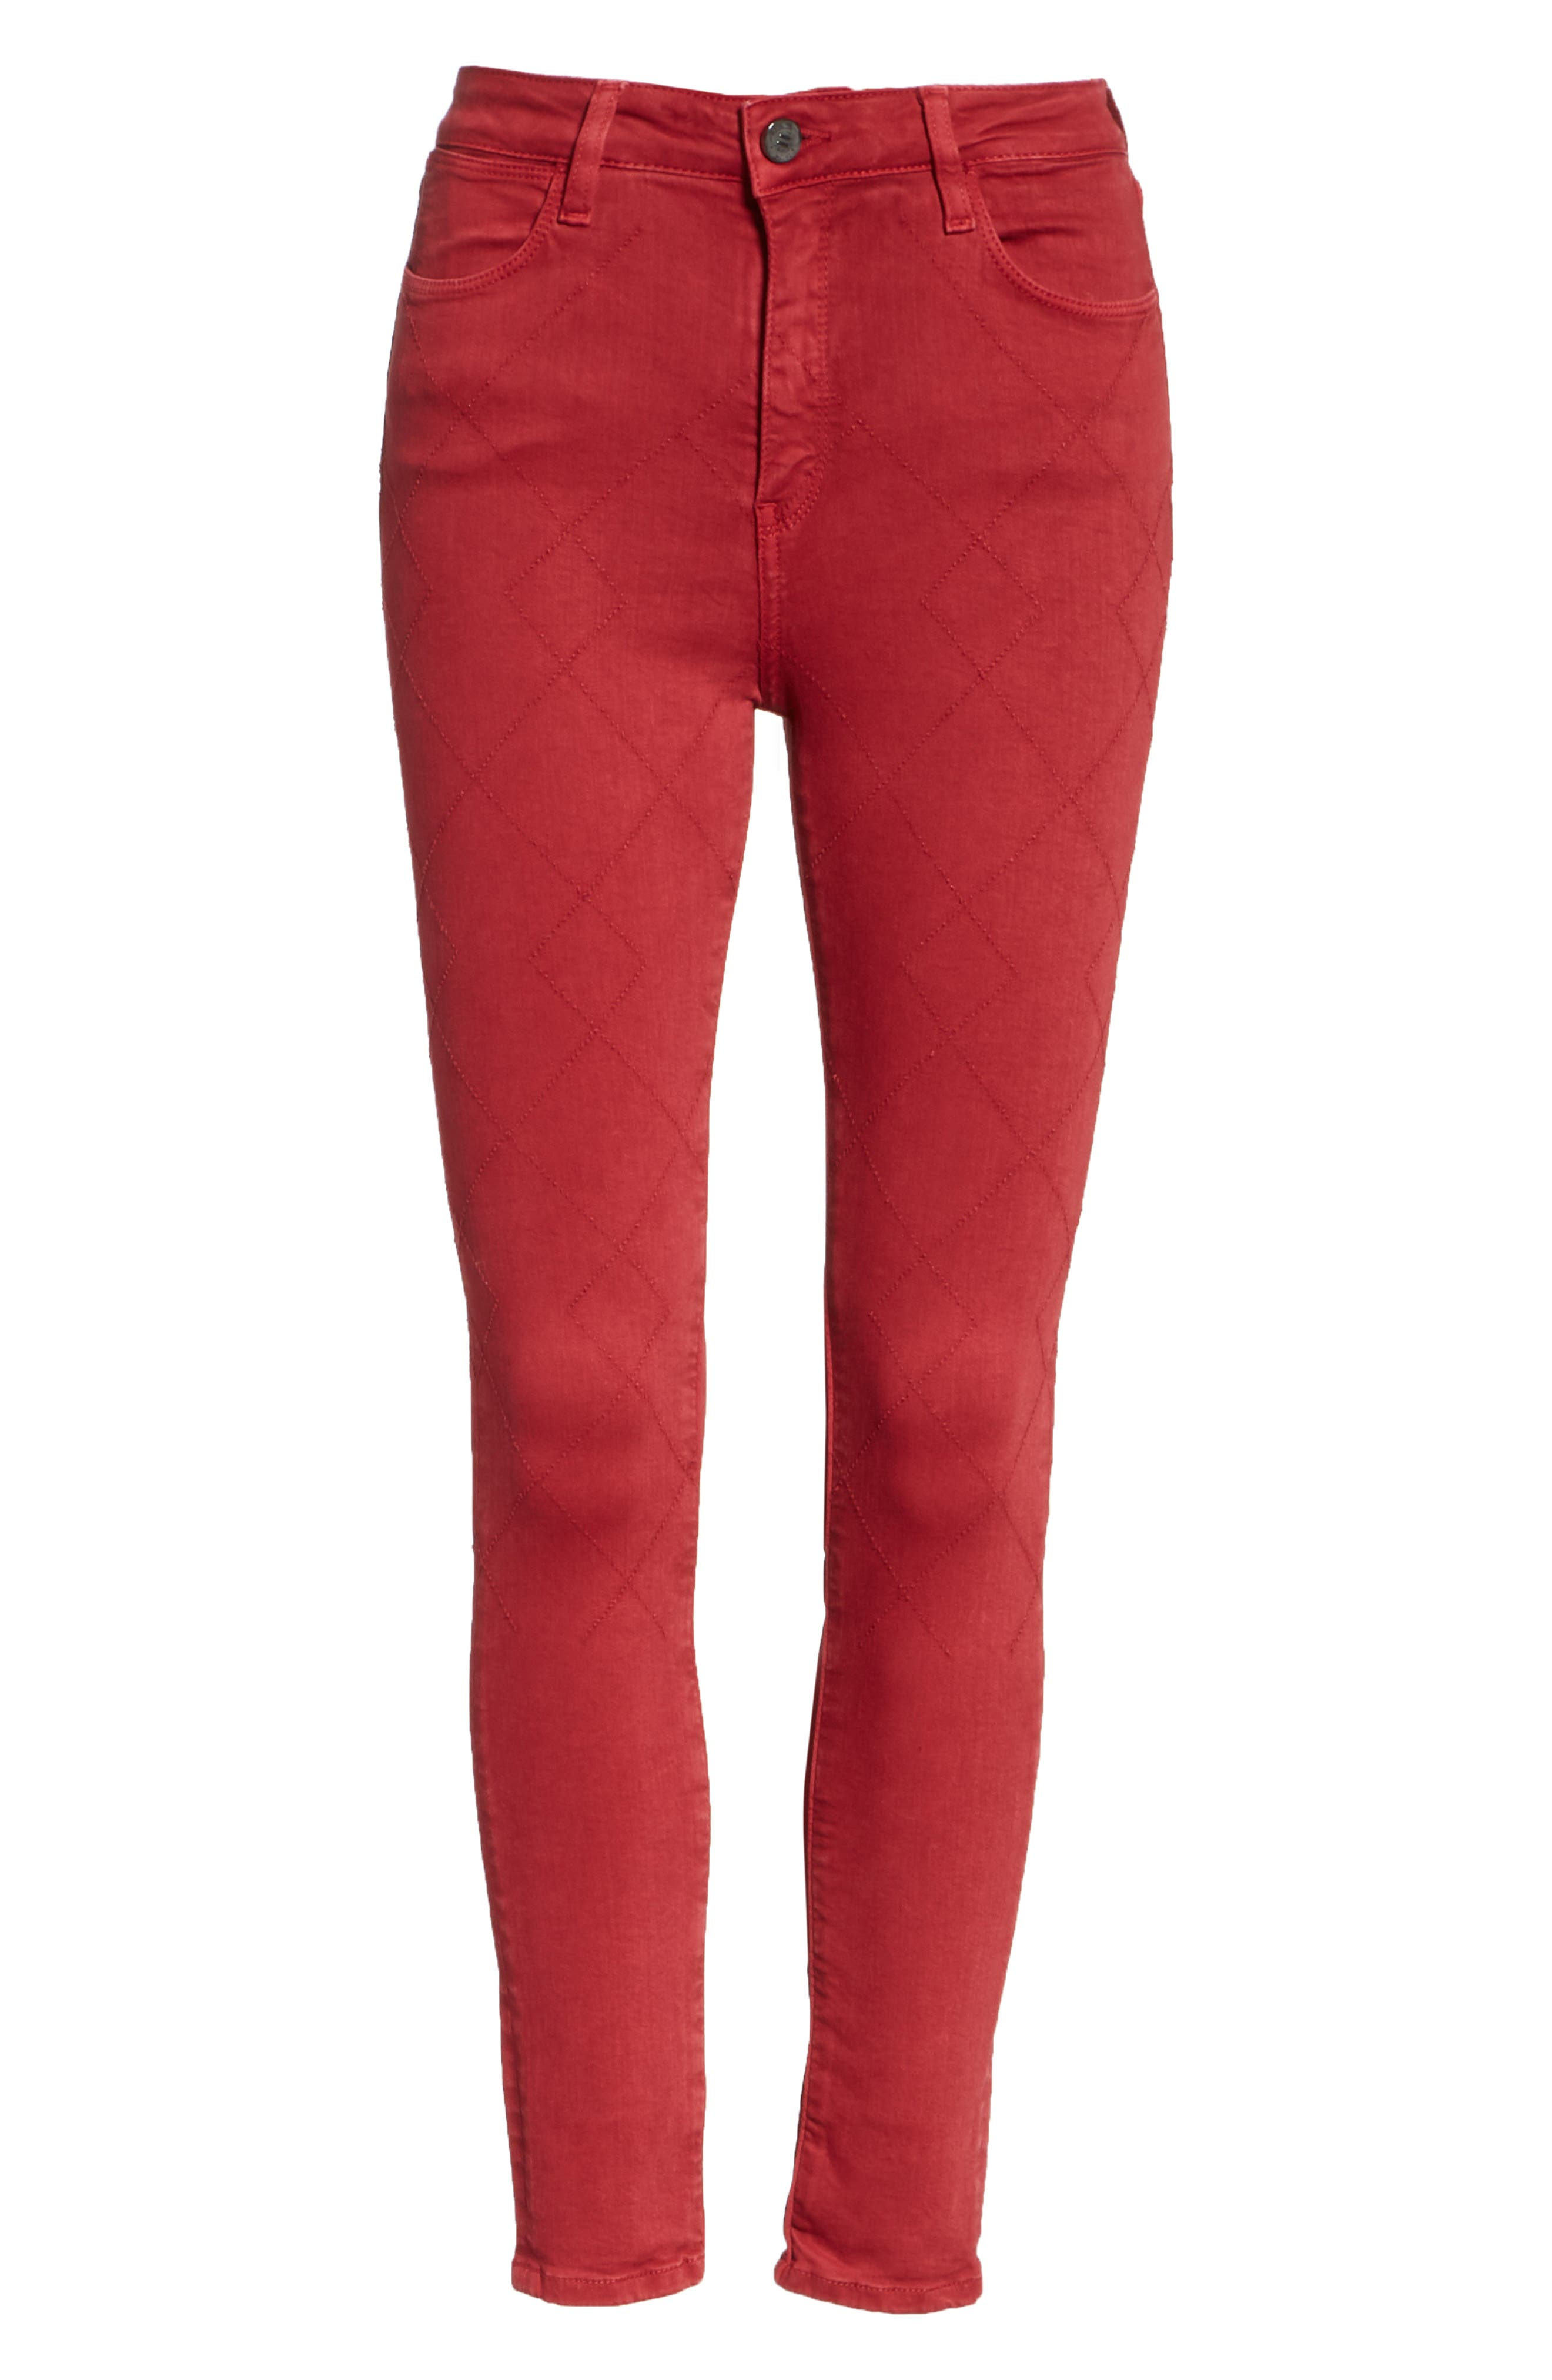 Rolling Old Reina Lattice Stitch Skinny Jeans,                             Alternate thumbnail 6, color,                             Framboise